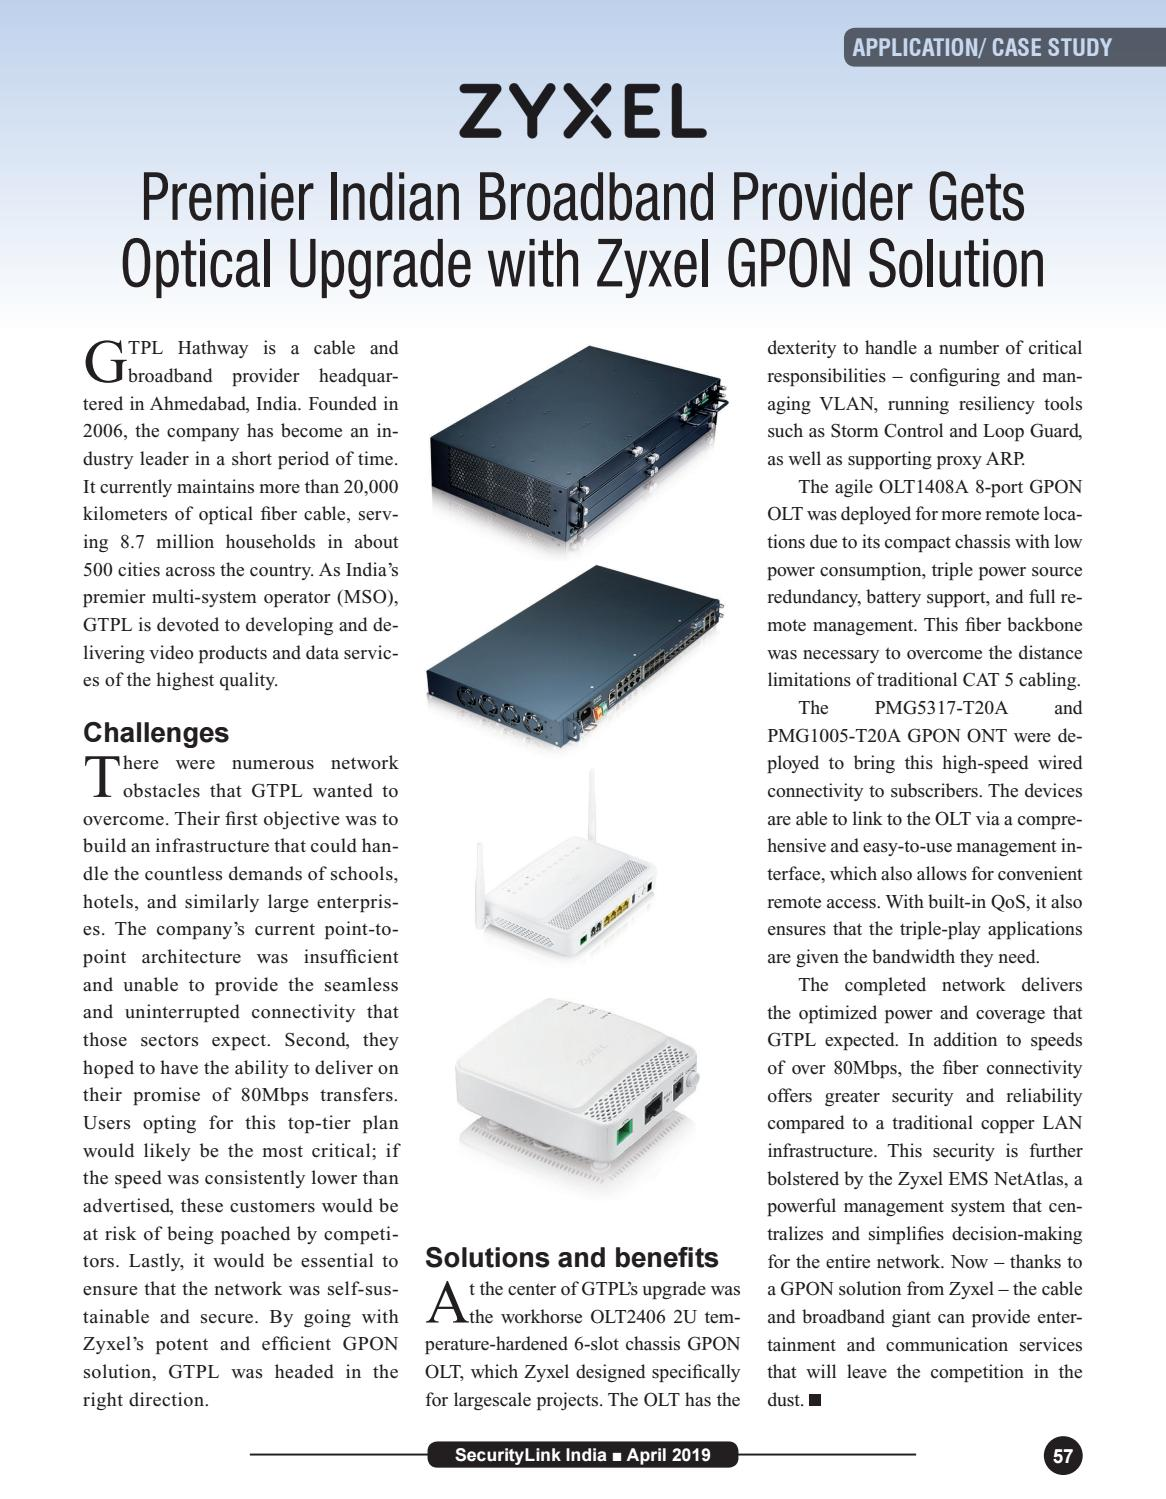 SecurityLink India Magazine April 2019 by Security Link India - issuu